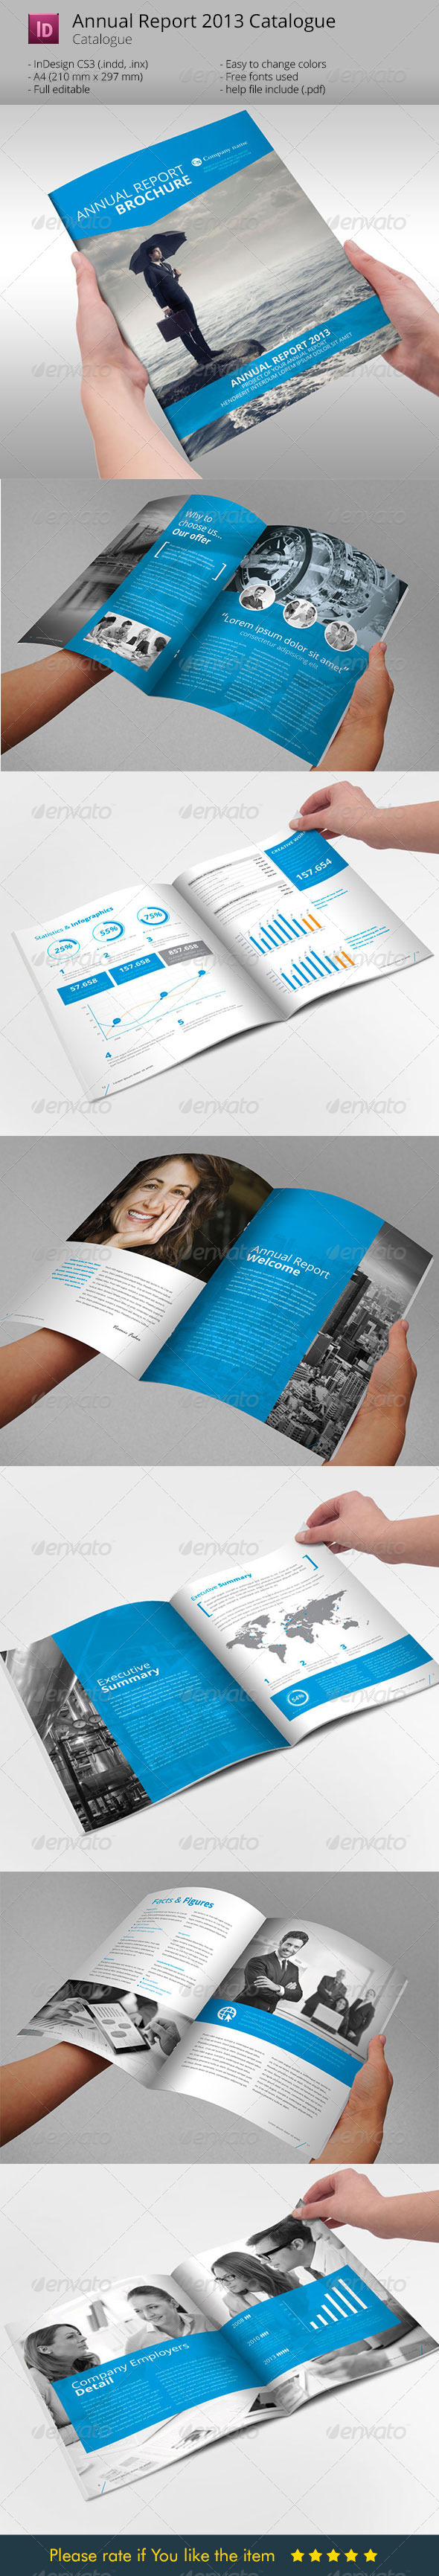 template brochure indesign - annual report brochure indesign template by braxas